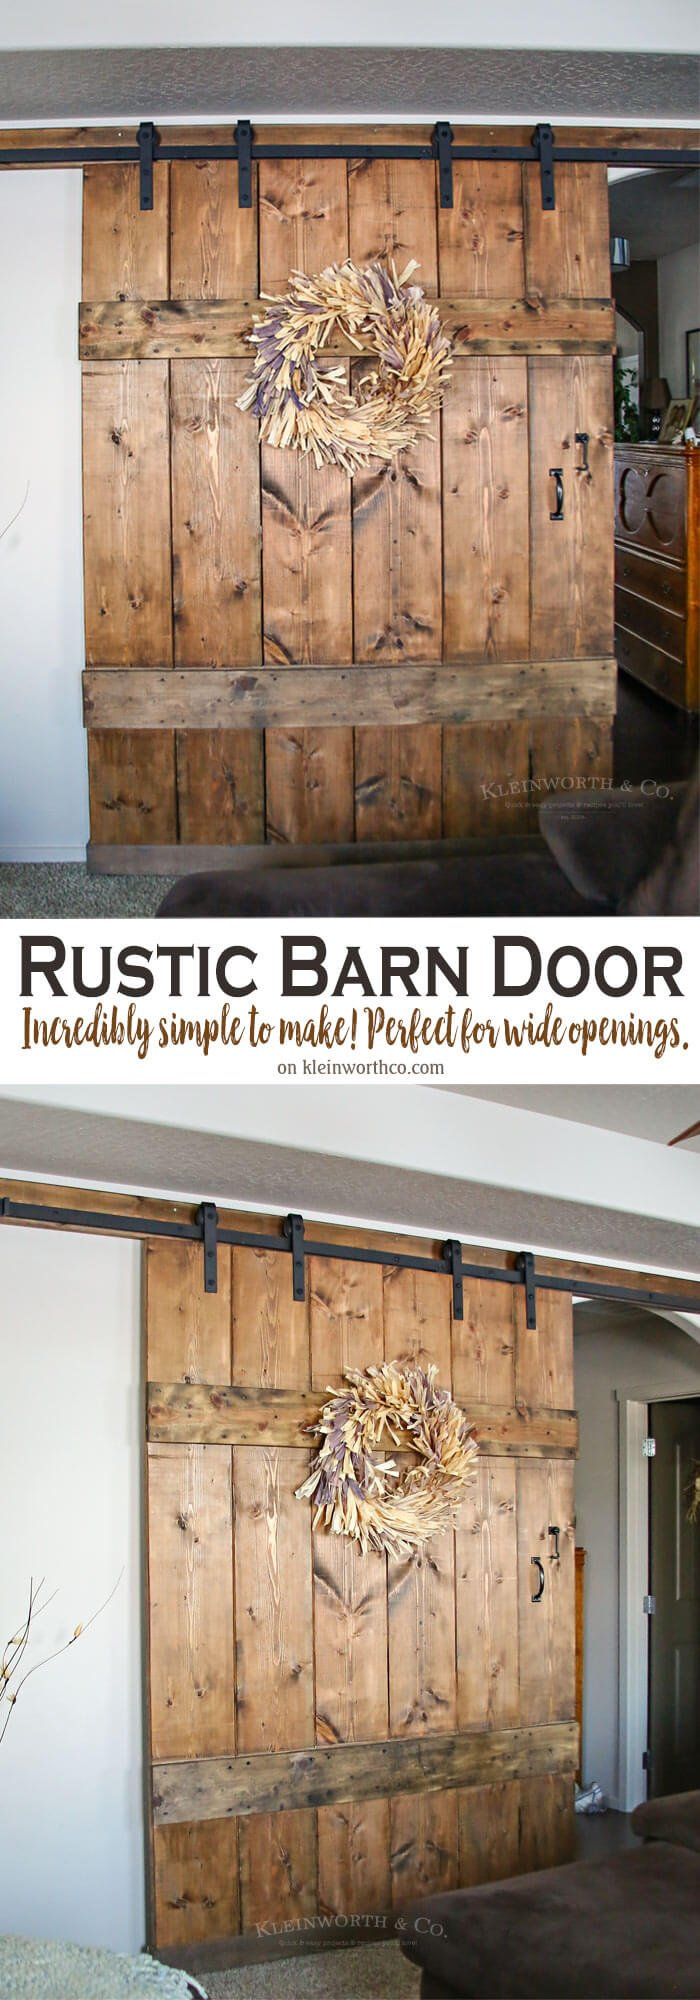 Wide Rustic Barn Door Kleinworth Amp Co